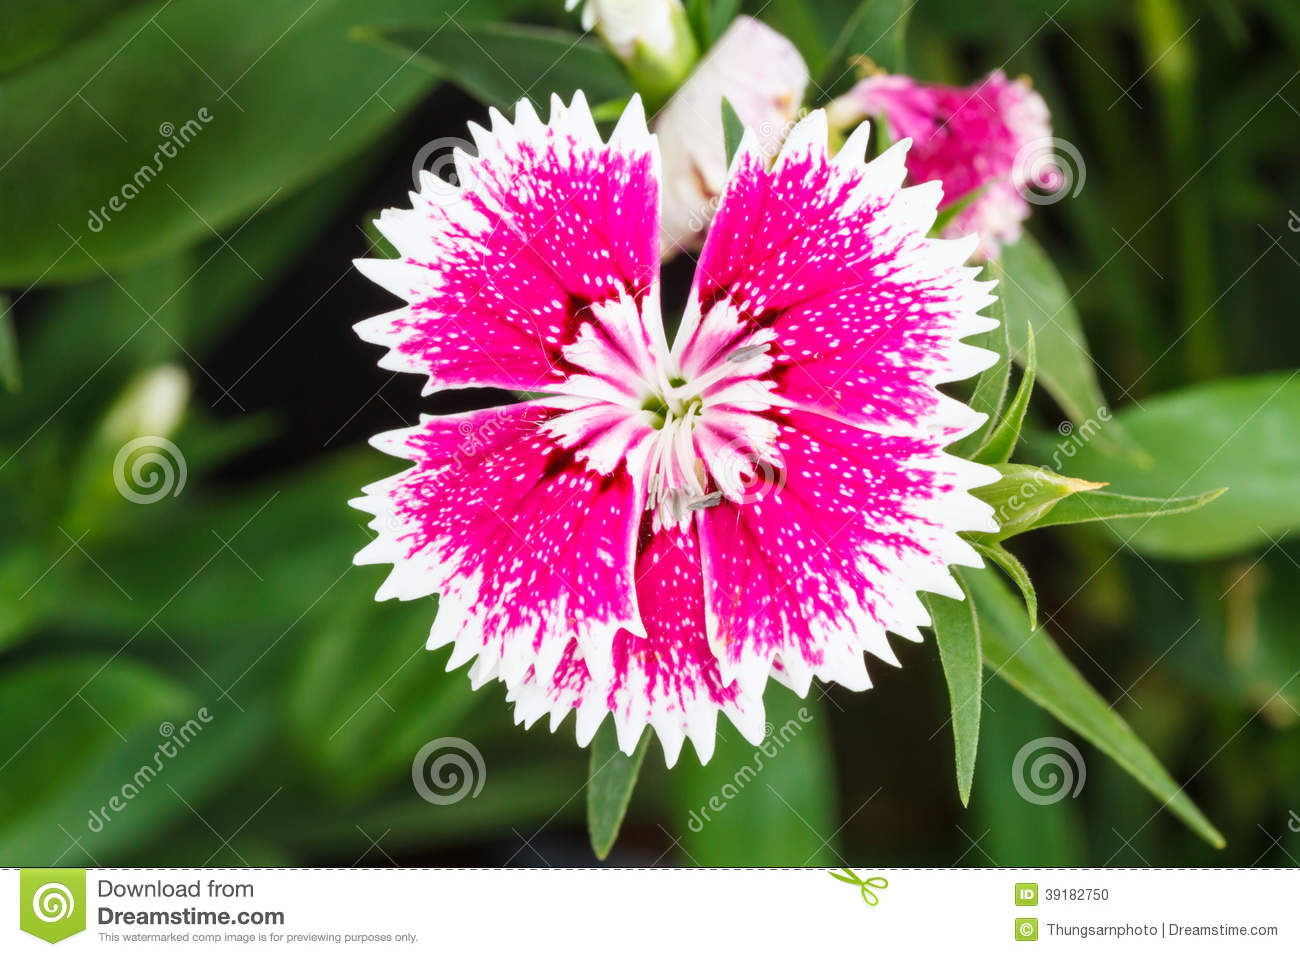 Indian pink china pink flower stock photo image of decoration download indian pink china pink flower stock photo image of decoration crimson mightylinksfo